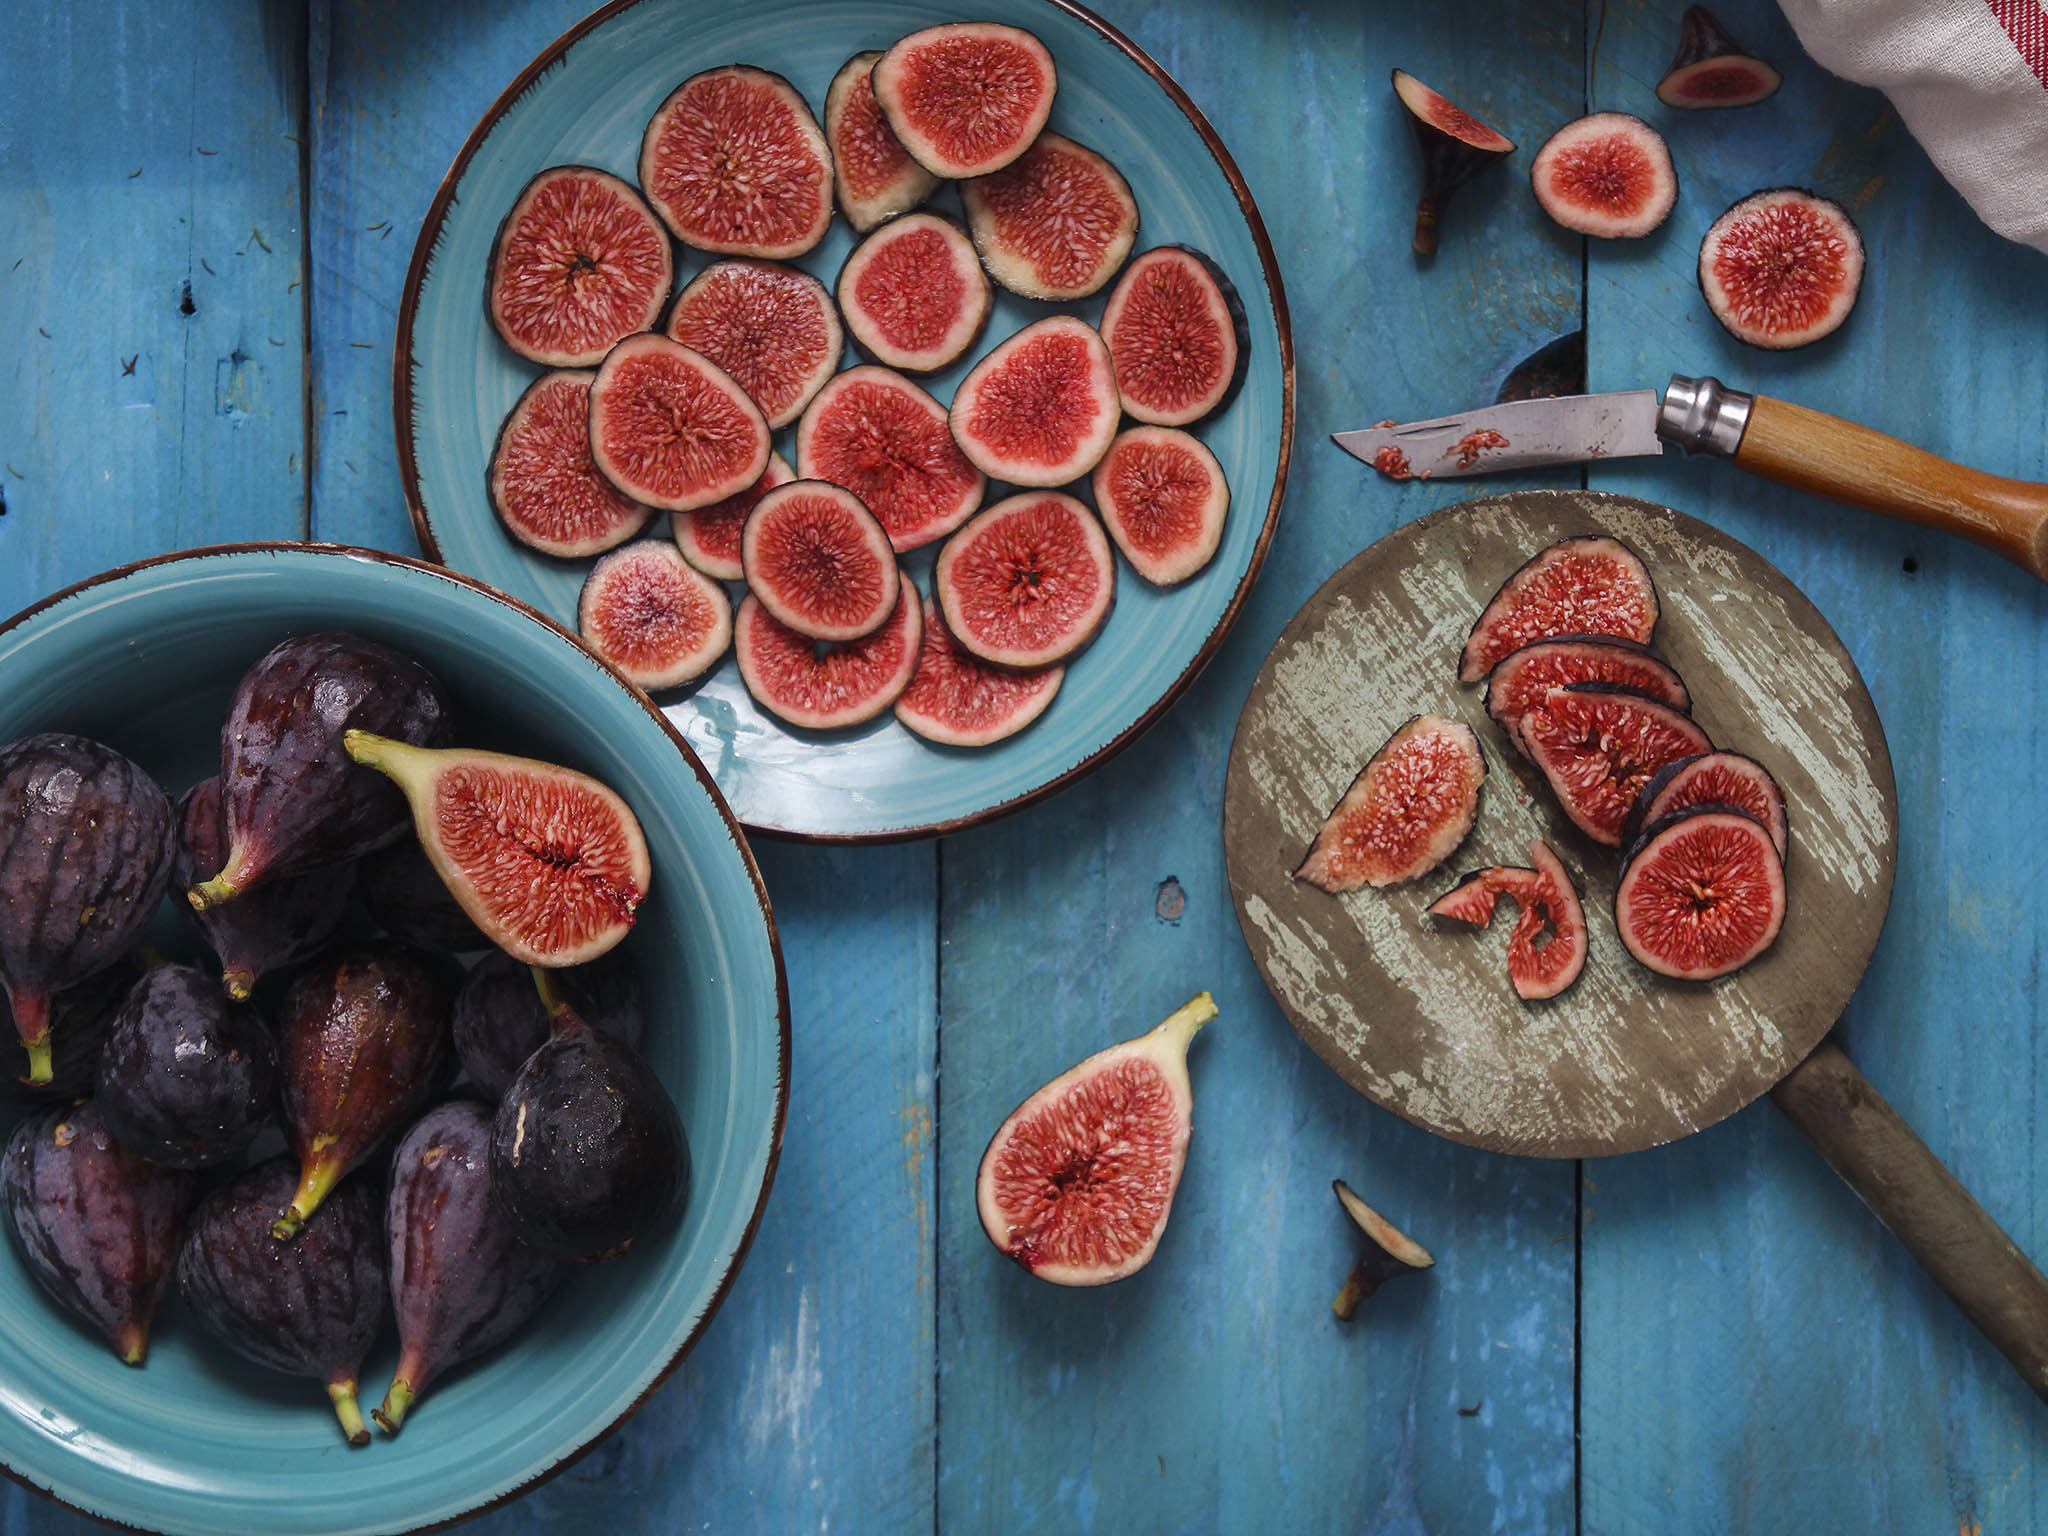 Forbidden fruit: How to make the most of seasonal figs